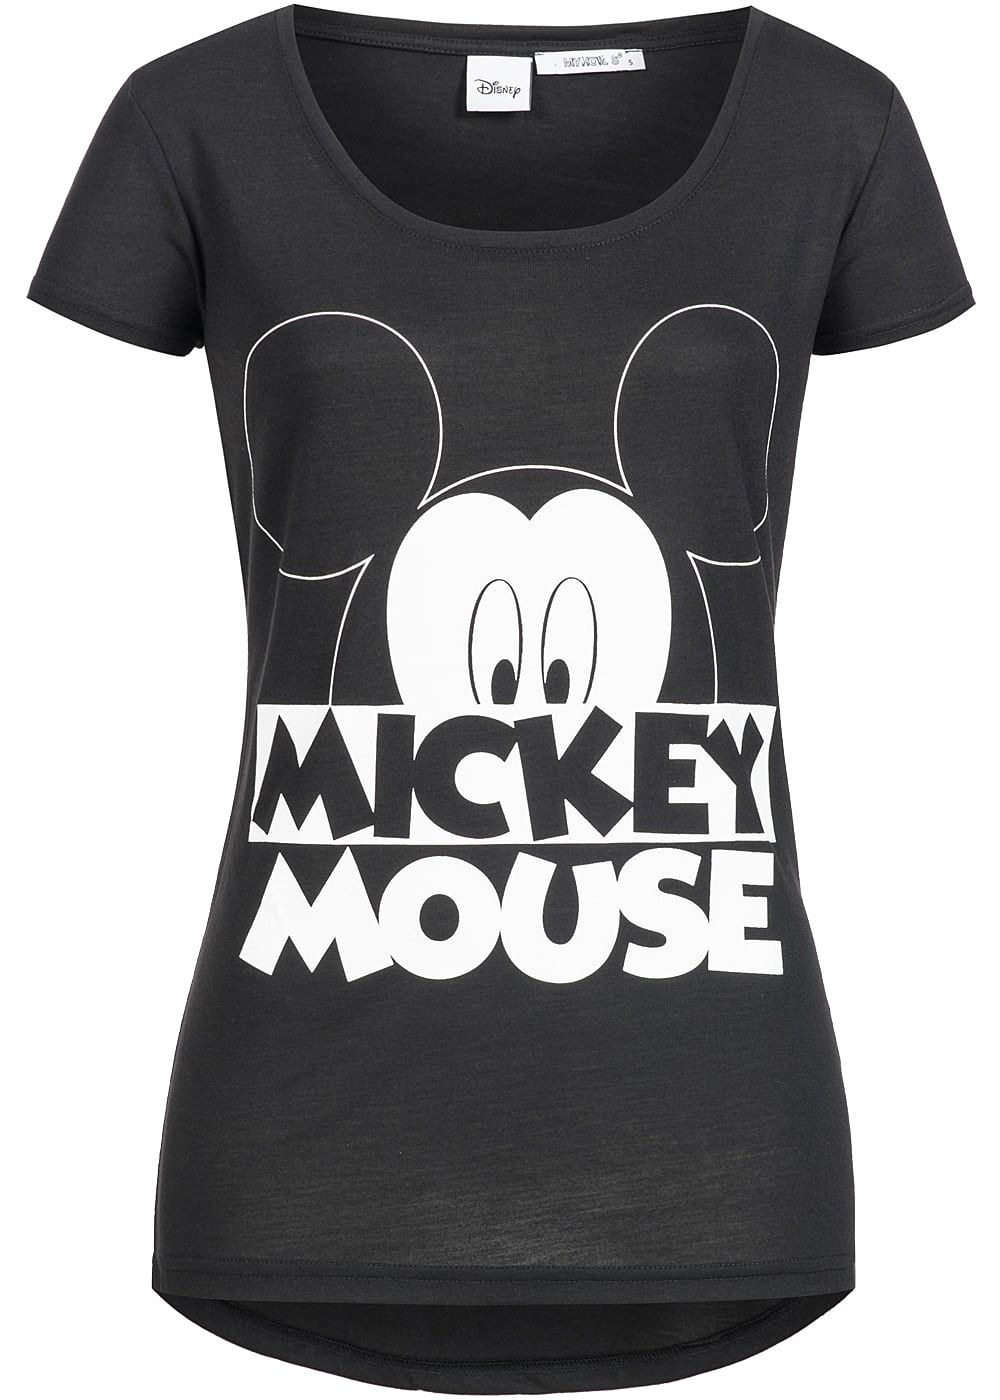 hailys damen t shirt vokuhila mickey mouse print schwarz weiss 77onlineshop. Black Bedroom Furniture Sets. Home Design Ideas